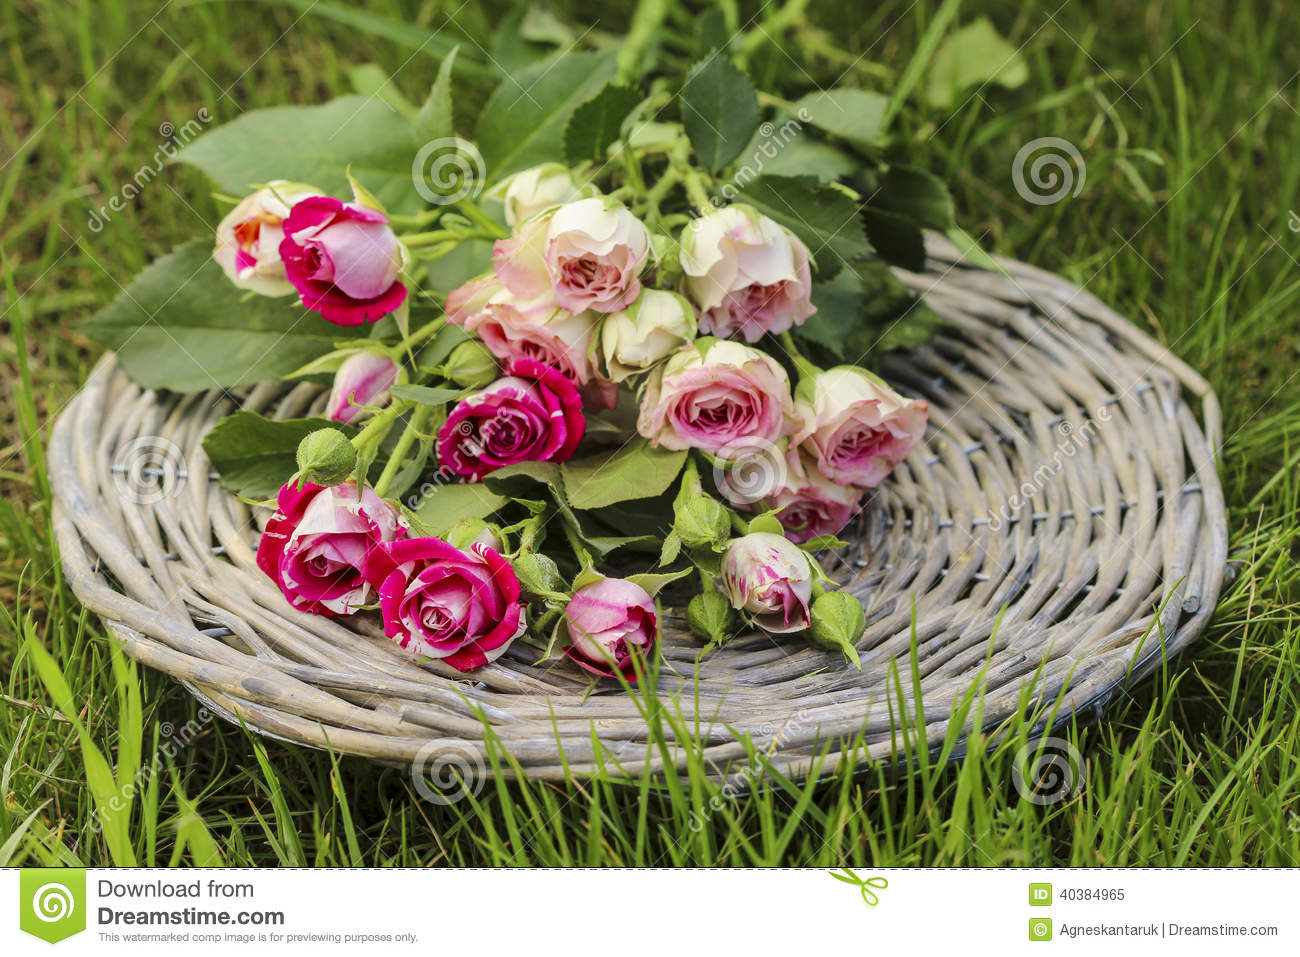 pink roses in a country garden stock photo - image: 42783063